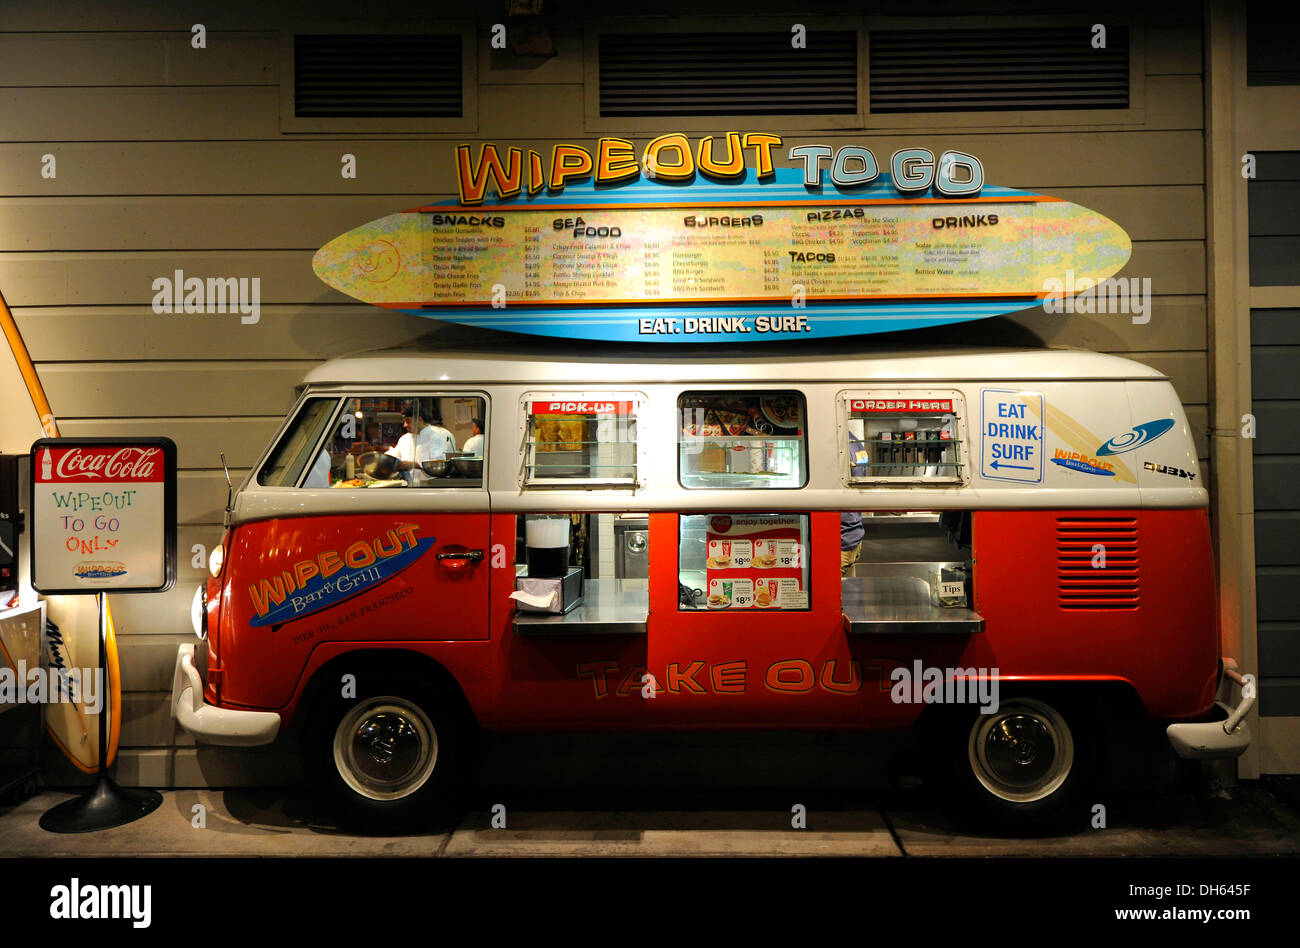 Wipeout To Go takeaway in an old VW bus, Pier 39, Fisherman's Wharf, San Francisco, California, United States of America, USA - Stock Image